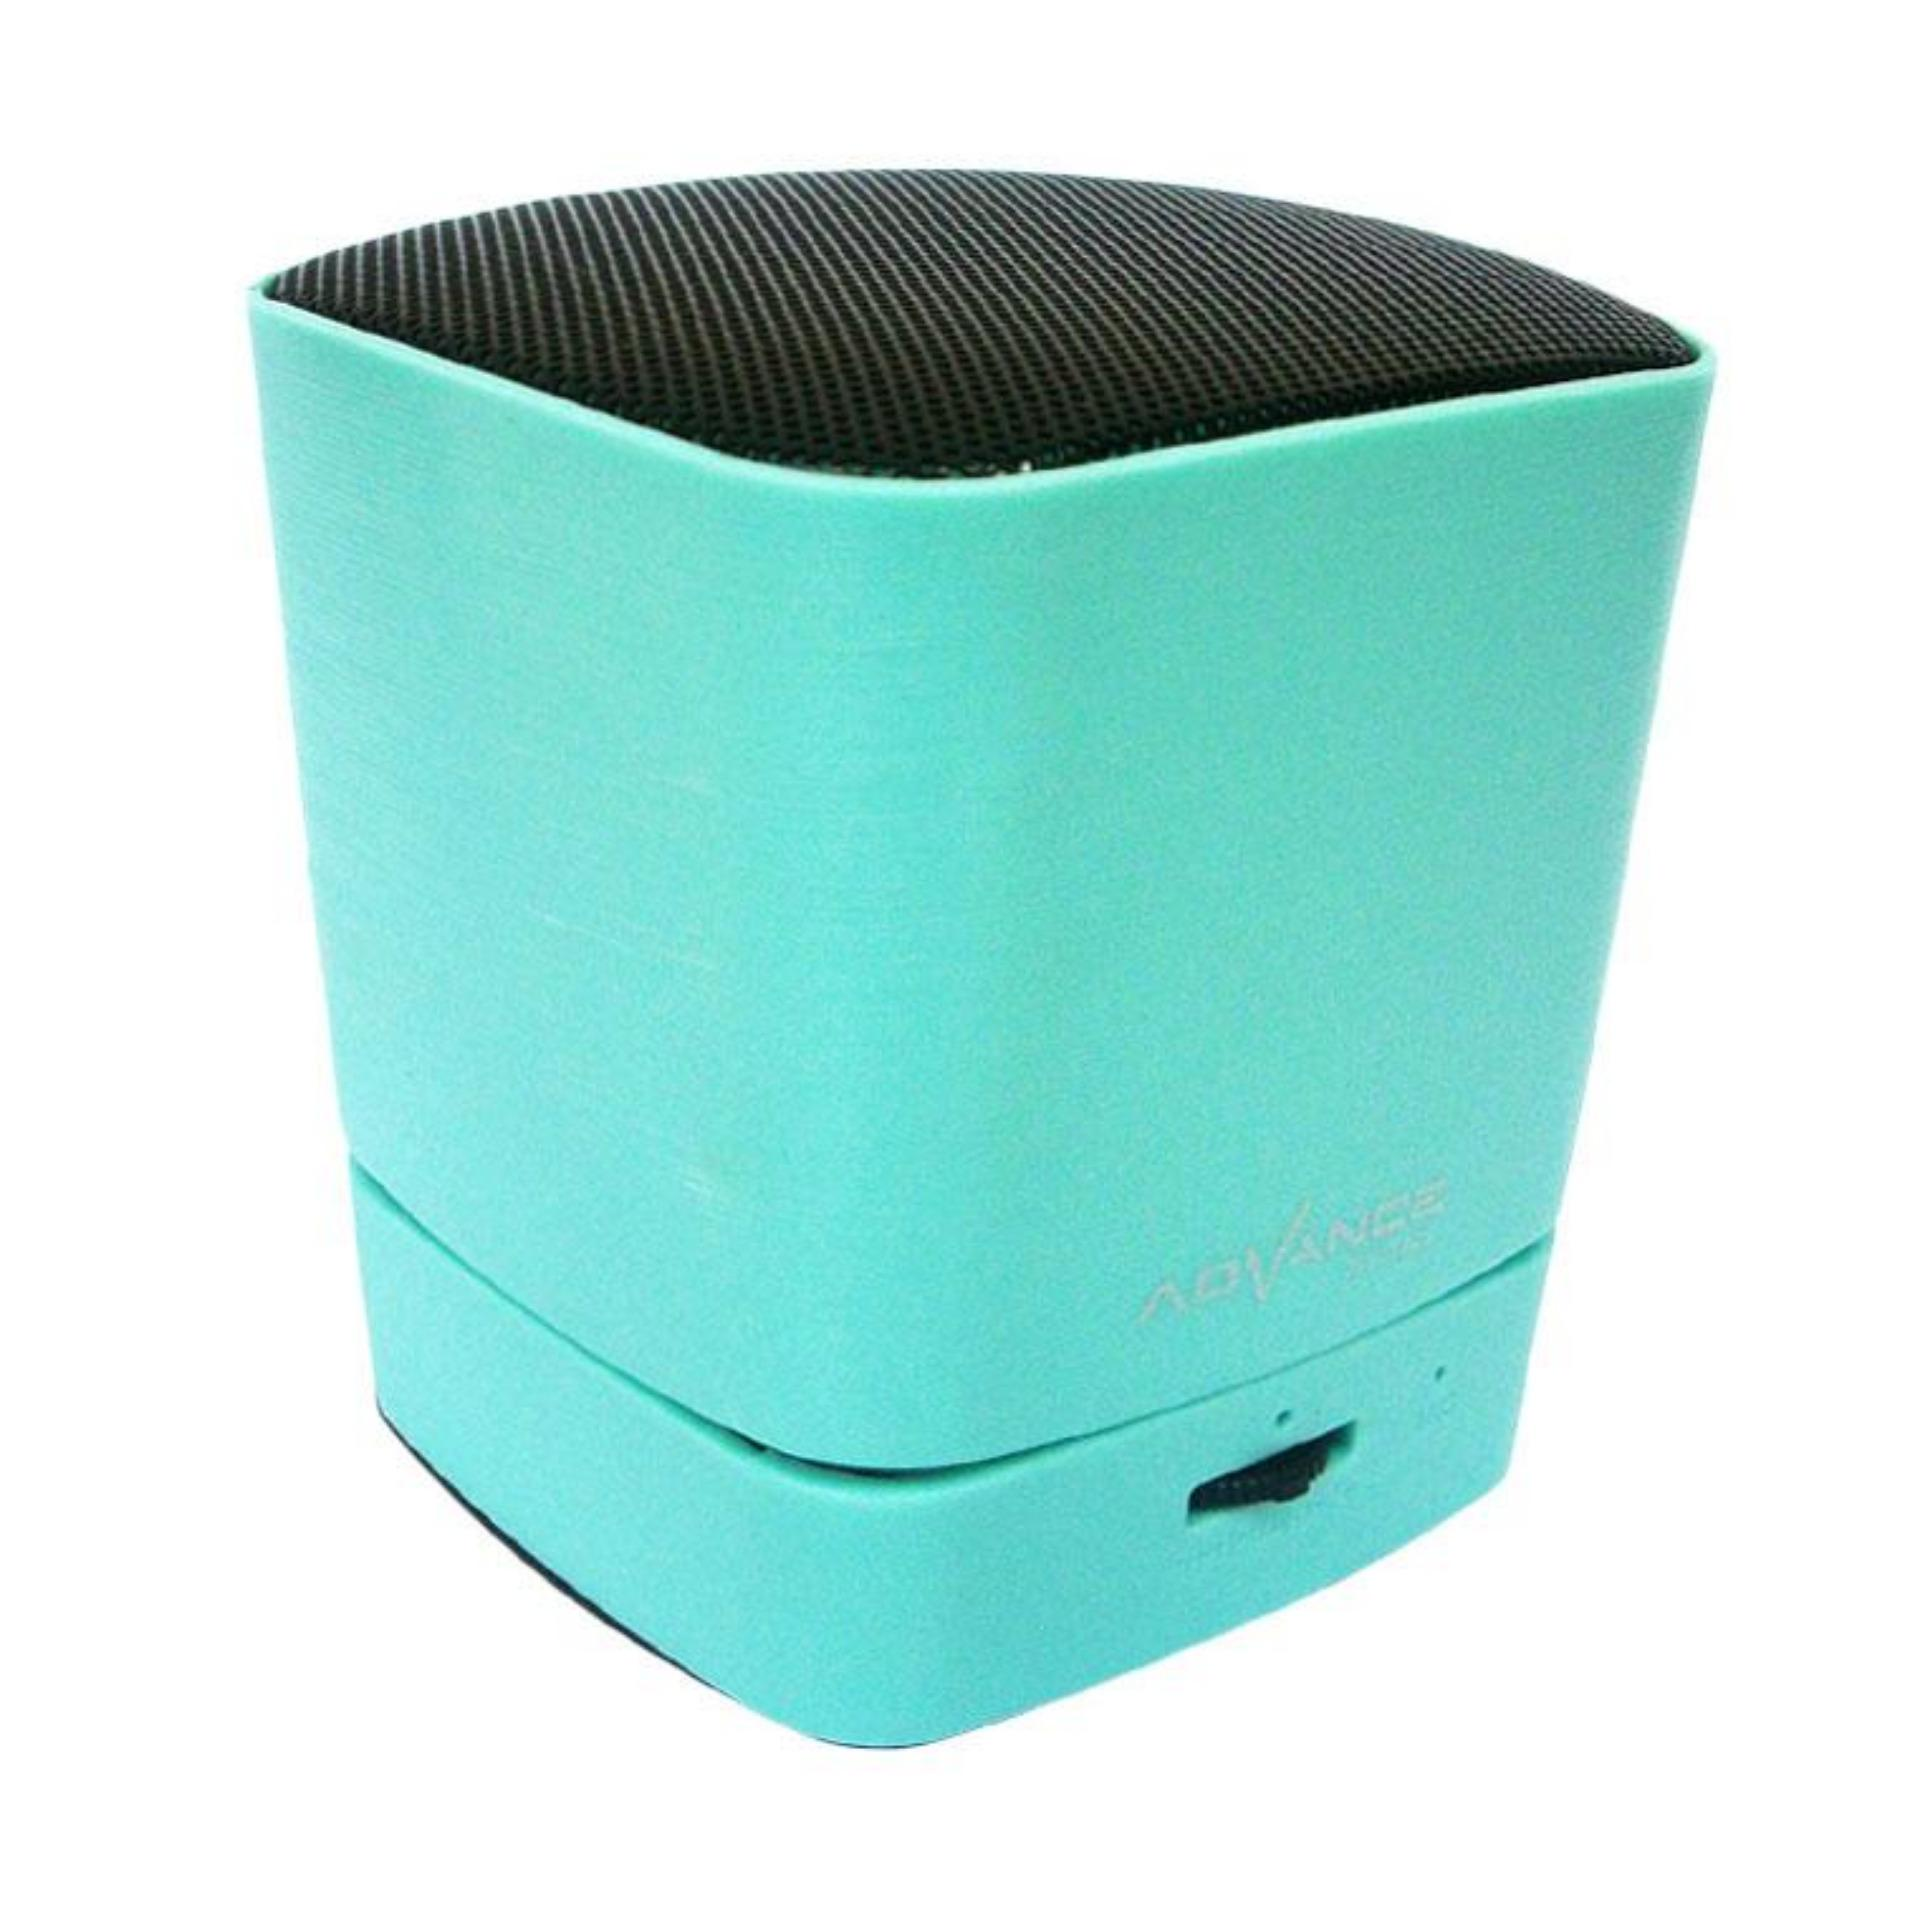 Harga Speaker Bluetooth Mini Portable Advance Es 030K Fullset Murah